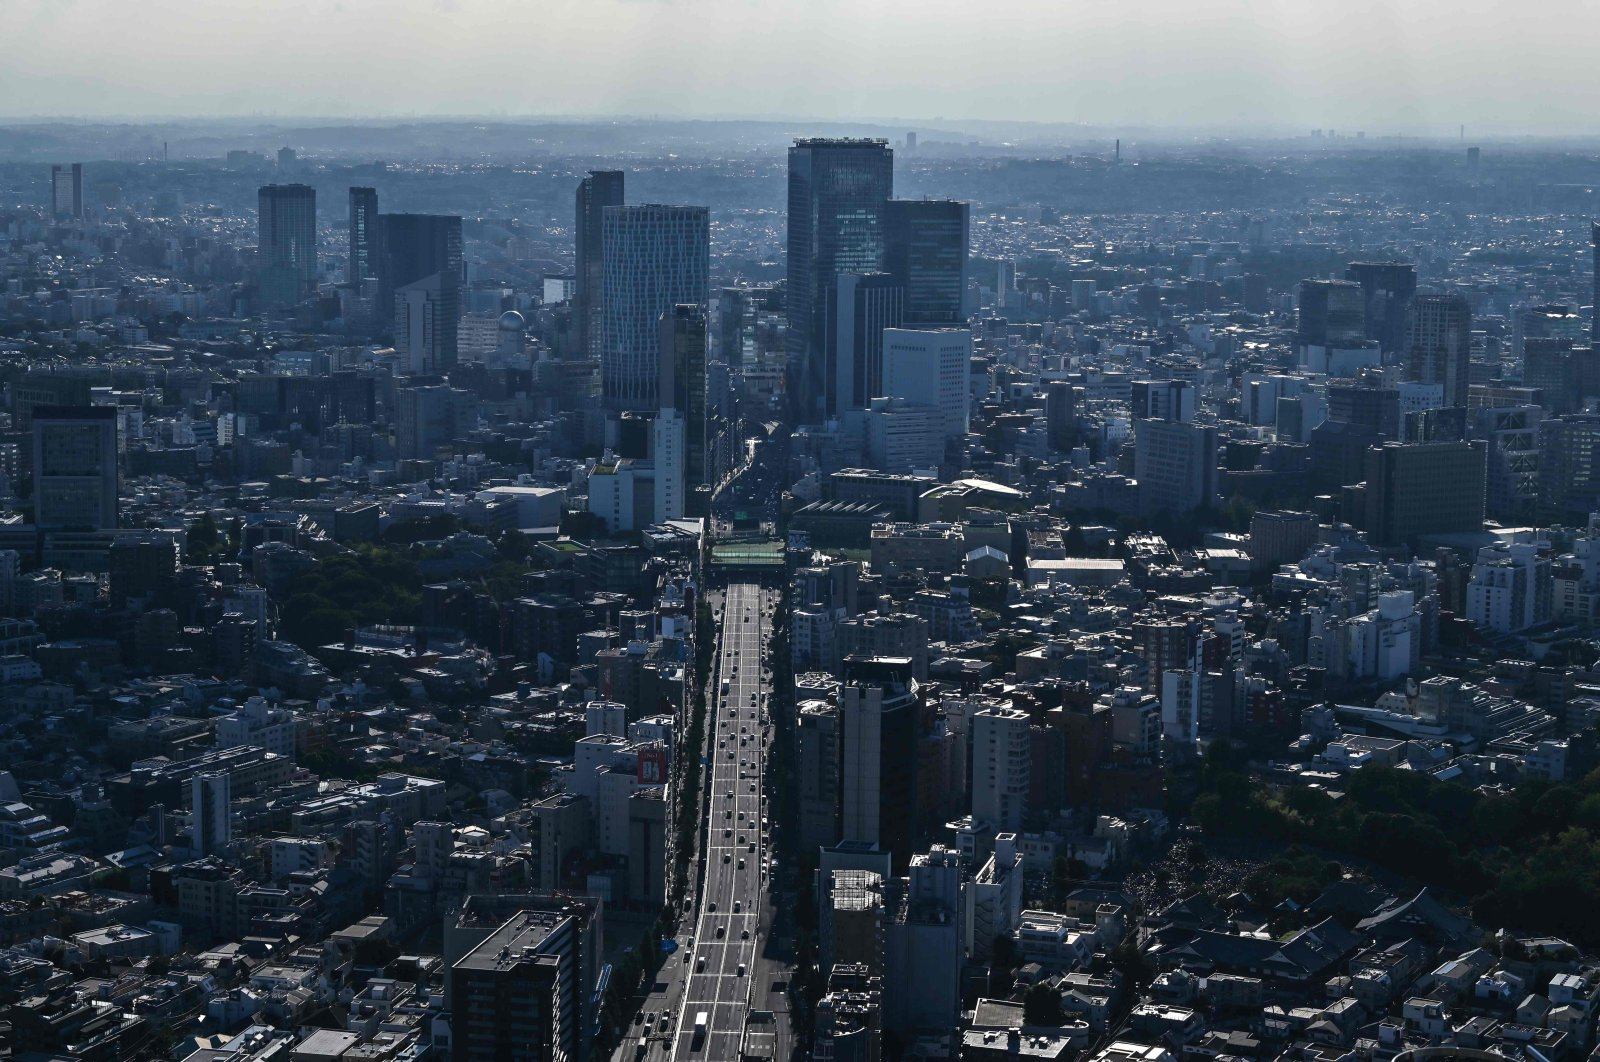 The Shibuya area skyline is seen from an observation deck in Tokyo on Aug. 26, 2020. (AFP Photo)